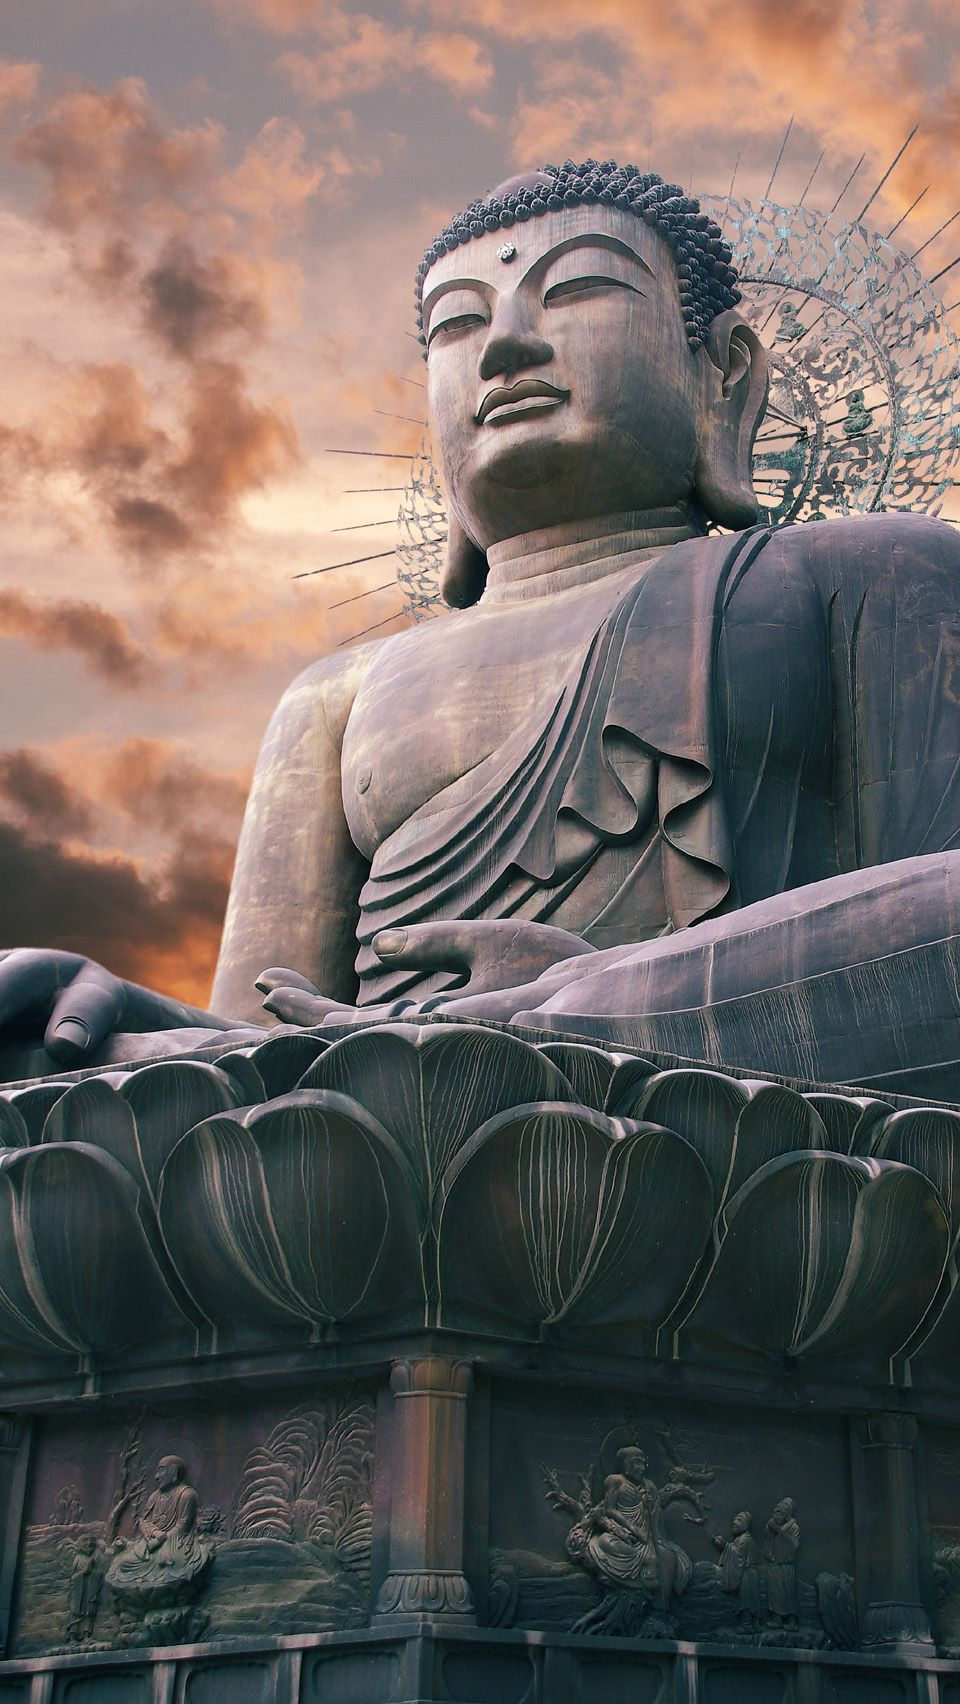 Giant Statue Of Buddha South Korea Hd Iphone Wallpapers Buddha Statue Buddha Statue